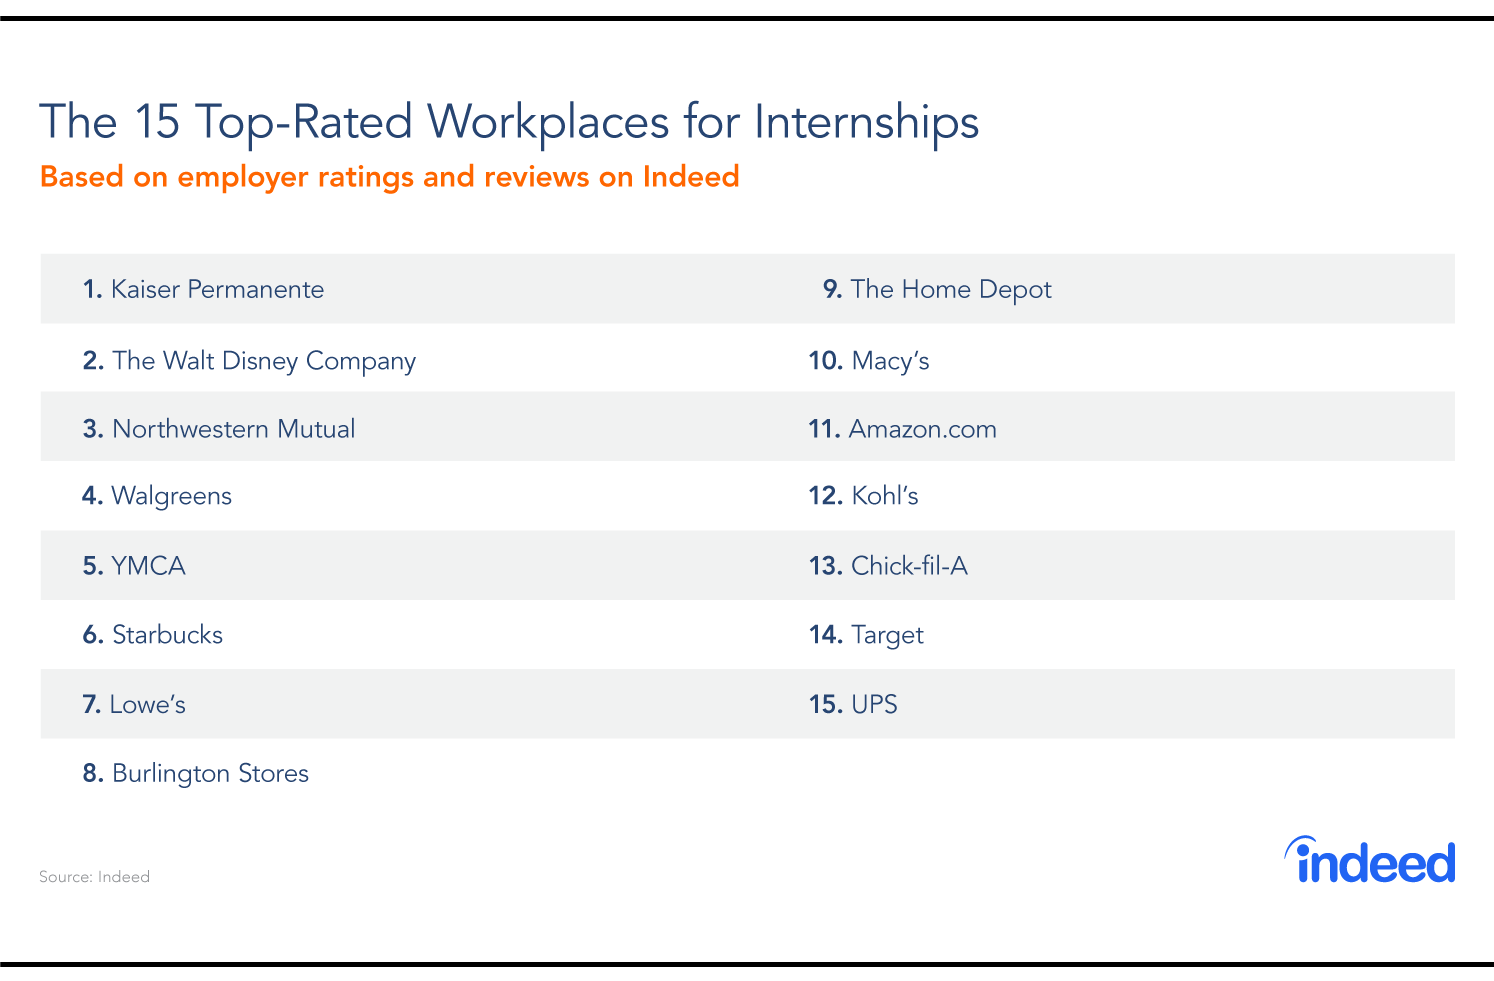 Top-Rated Workplaces By Interns: 5 Lessons From The Winning Companies